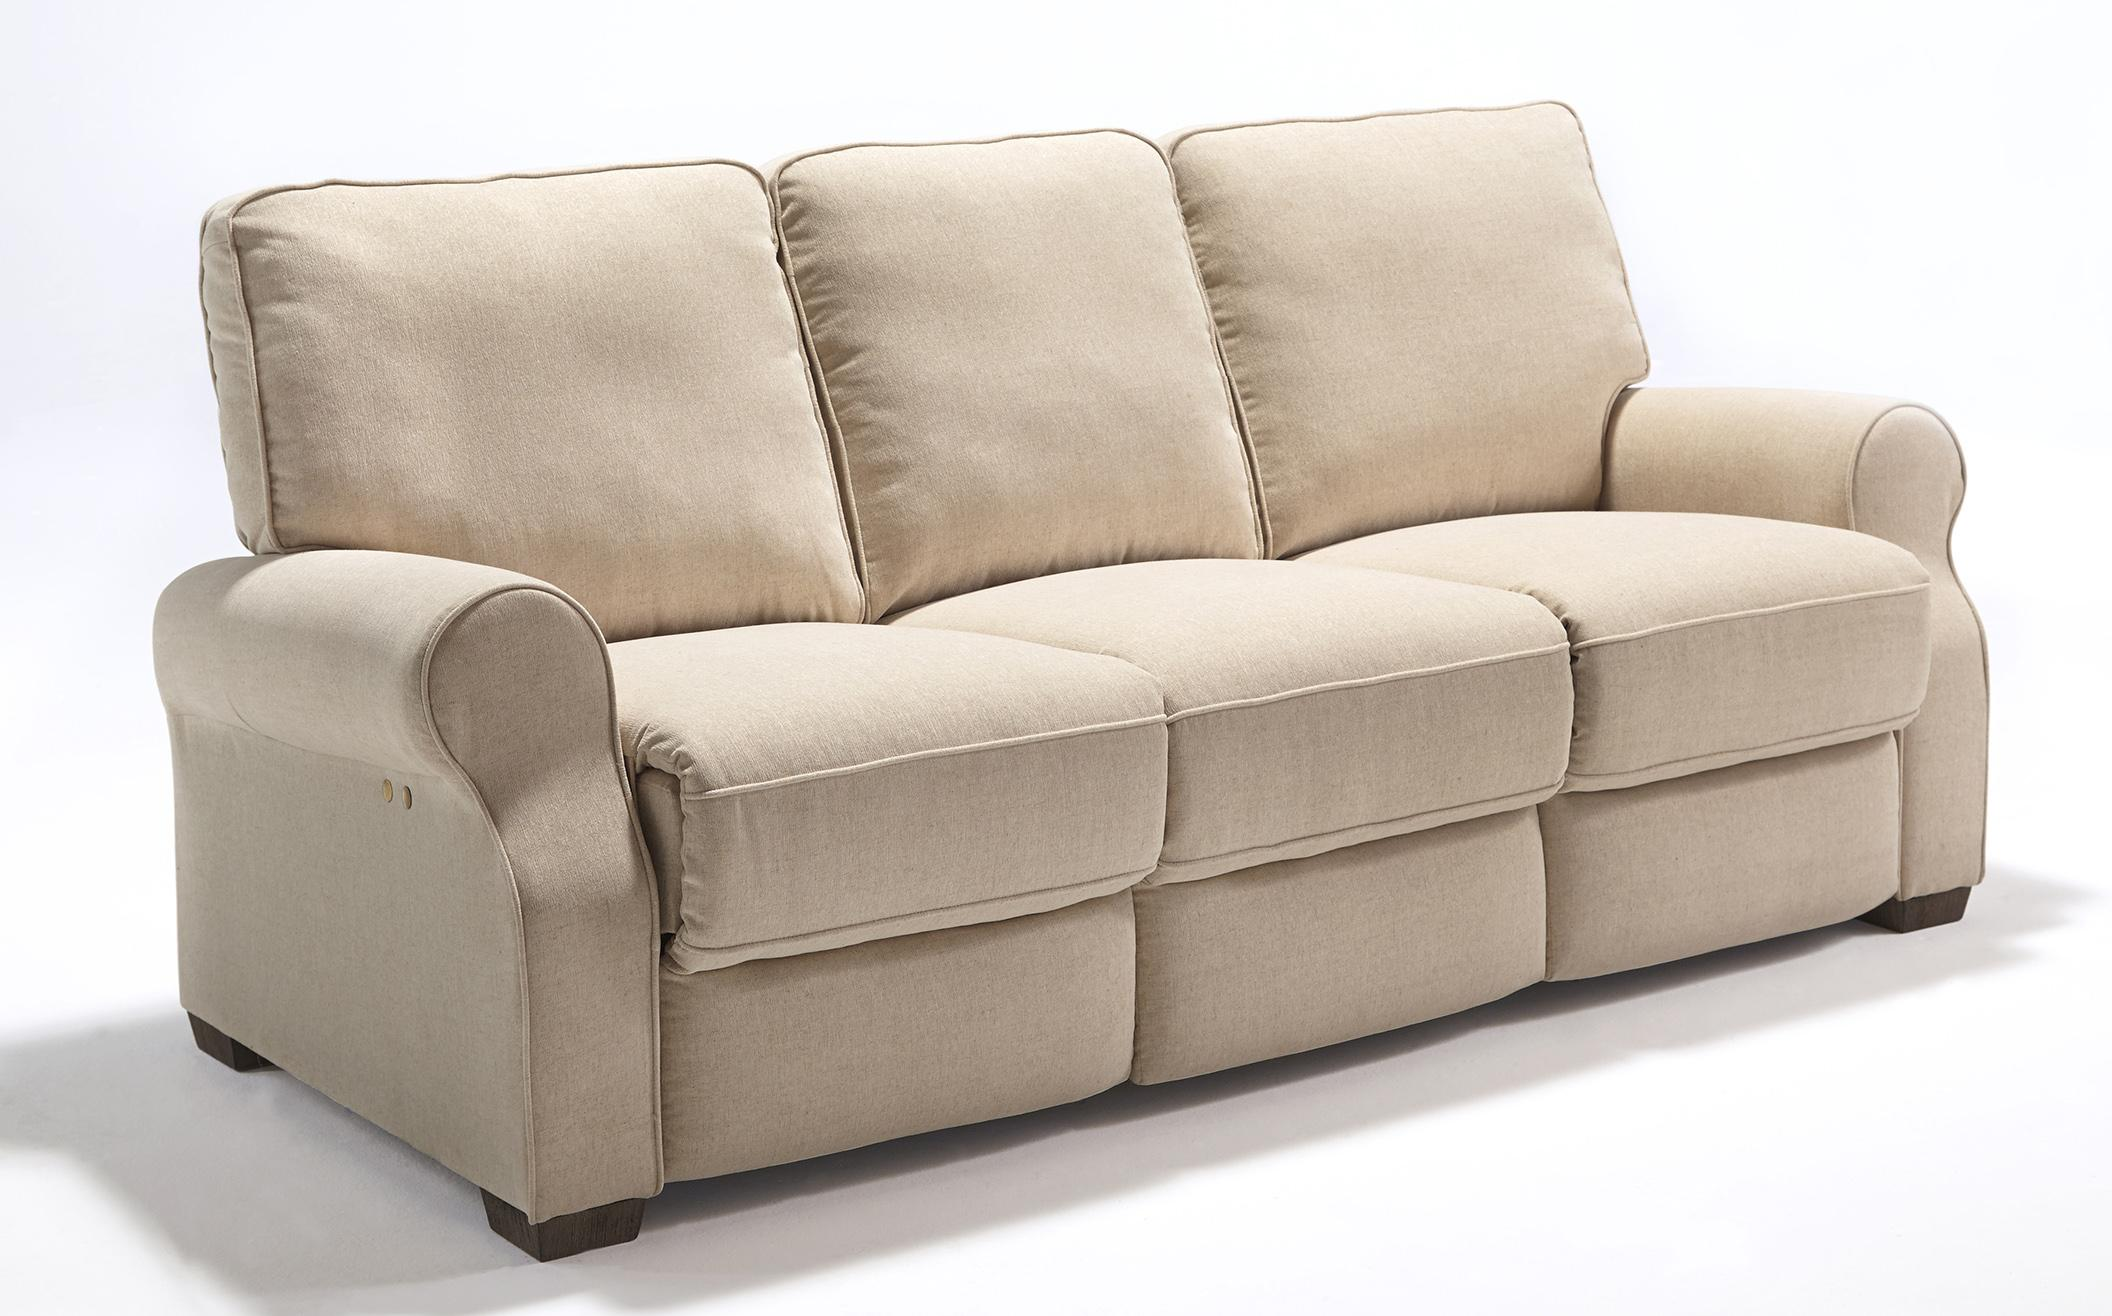 Traditional Power Reclining Sofa With High Legs